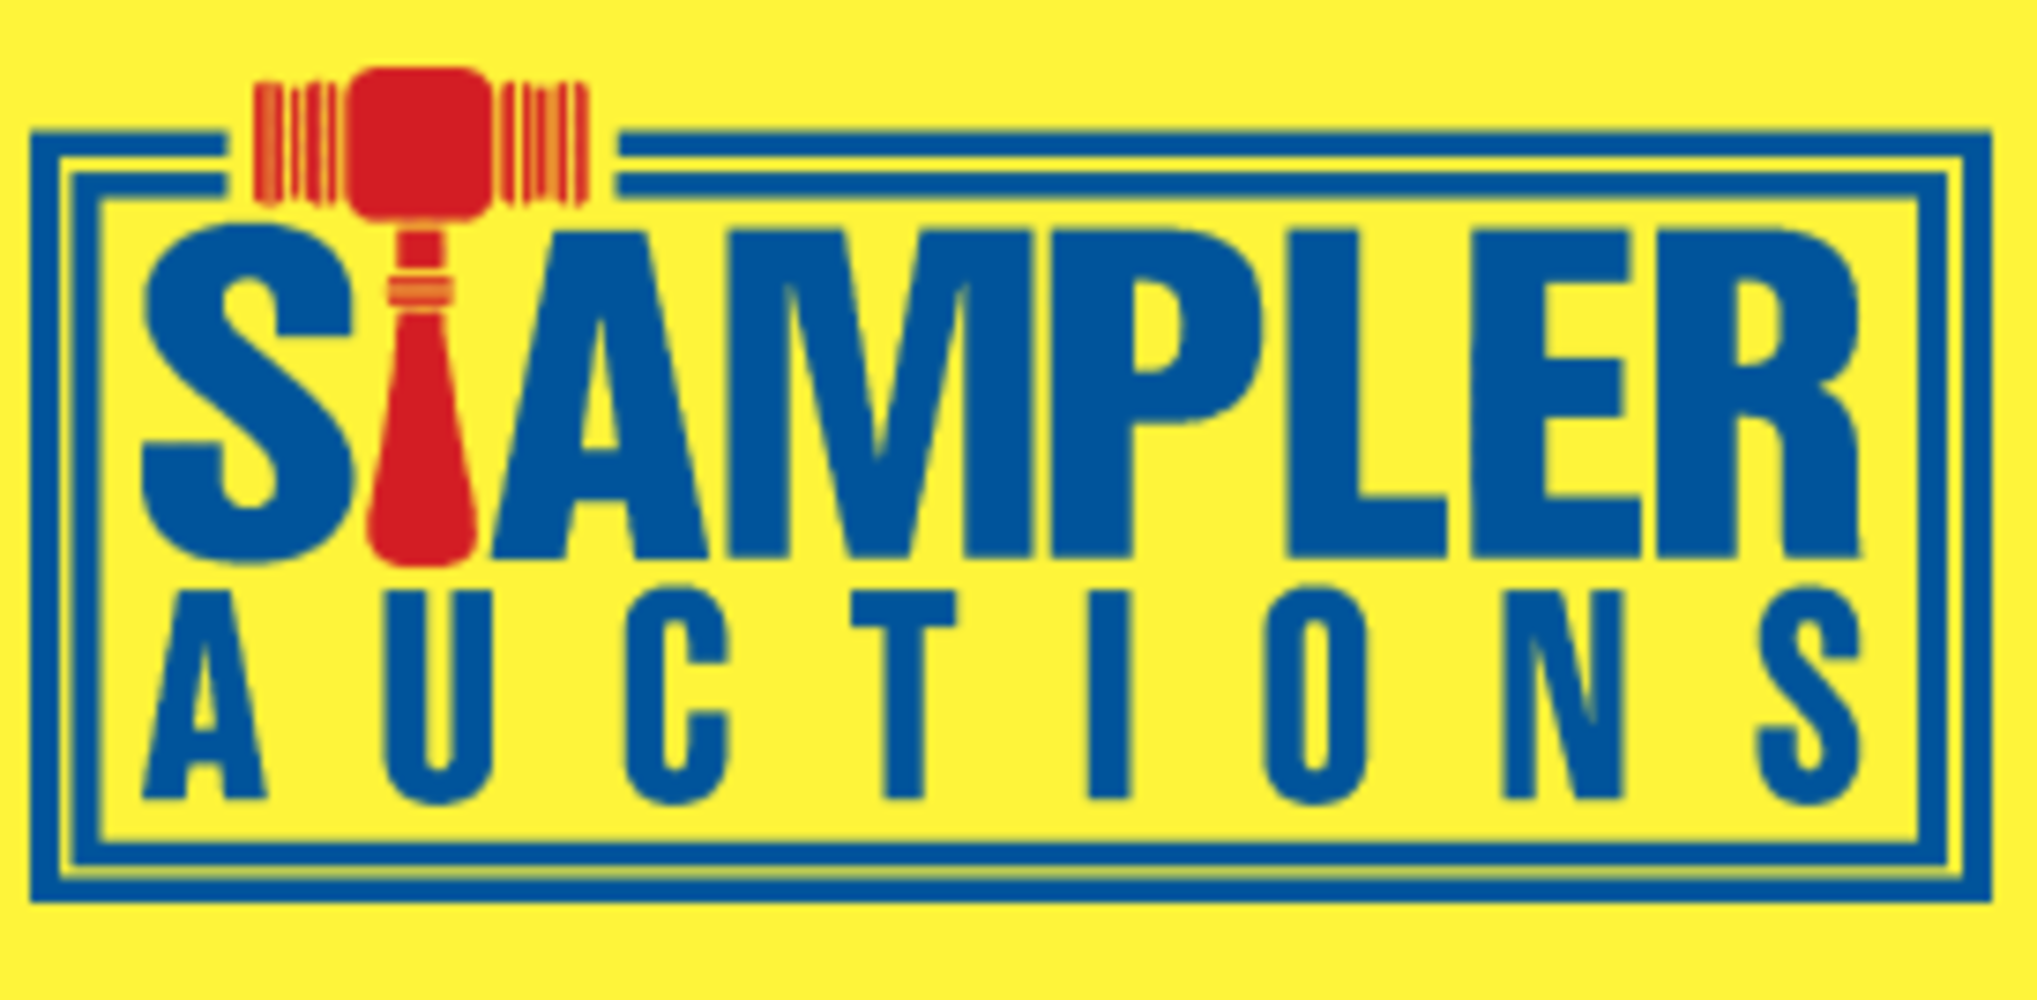 ABSOLUTE AUCTION   PLUMBING, ELECTRICAL, A/C & APPLIANCE PARTS & SUPPLIES  HANDLING EQUIPMENT /  30+/- VANS & TRUCKS